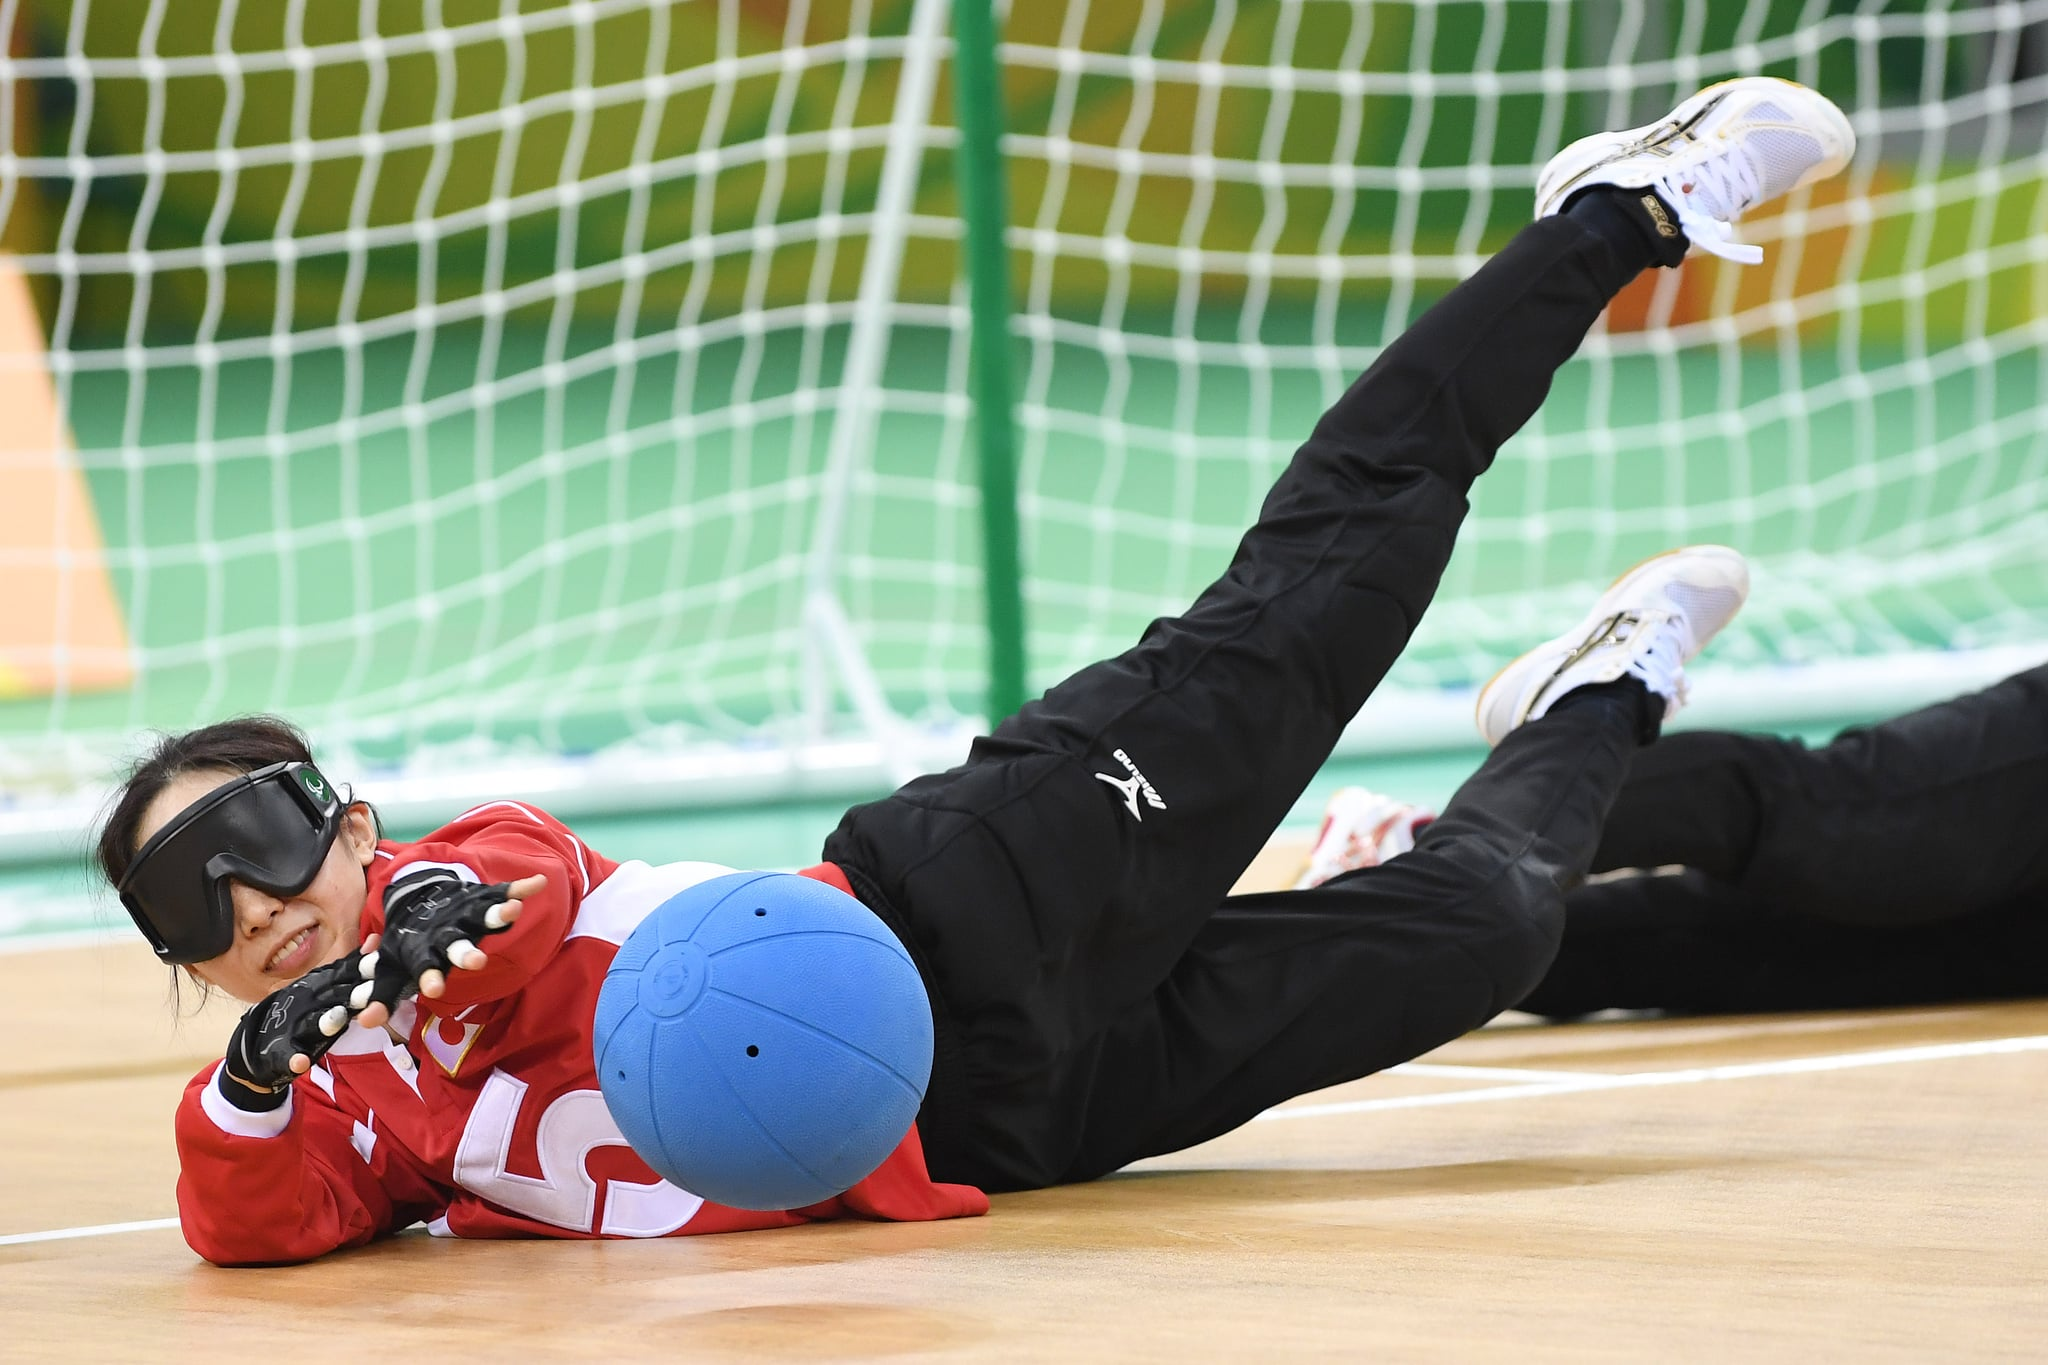 RIO DE JANEIRO, BRAZIL - SEPTEMBER 11:  Rie Urata of Japan blocks in the women's Goalball on day 4 of the Rio 2016 Paralympic Games at Future Arena on September 11, 2016 in Rio de Janeiro, Brazil.  (Photo by Atsushi Tomura/Getty Images for Tokyo 2020)